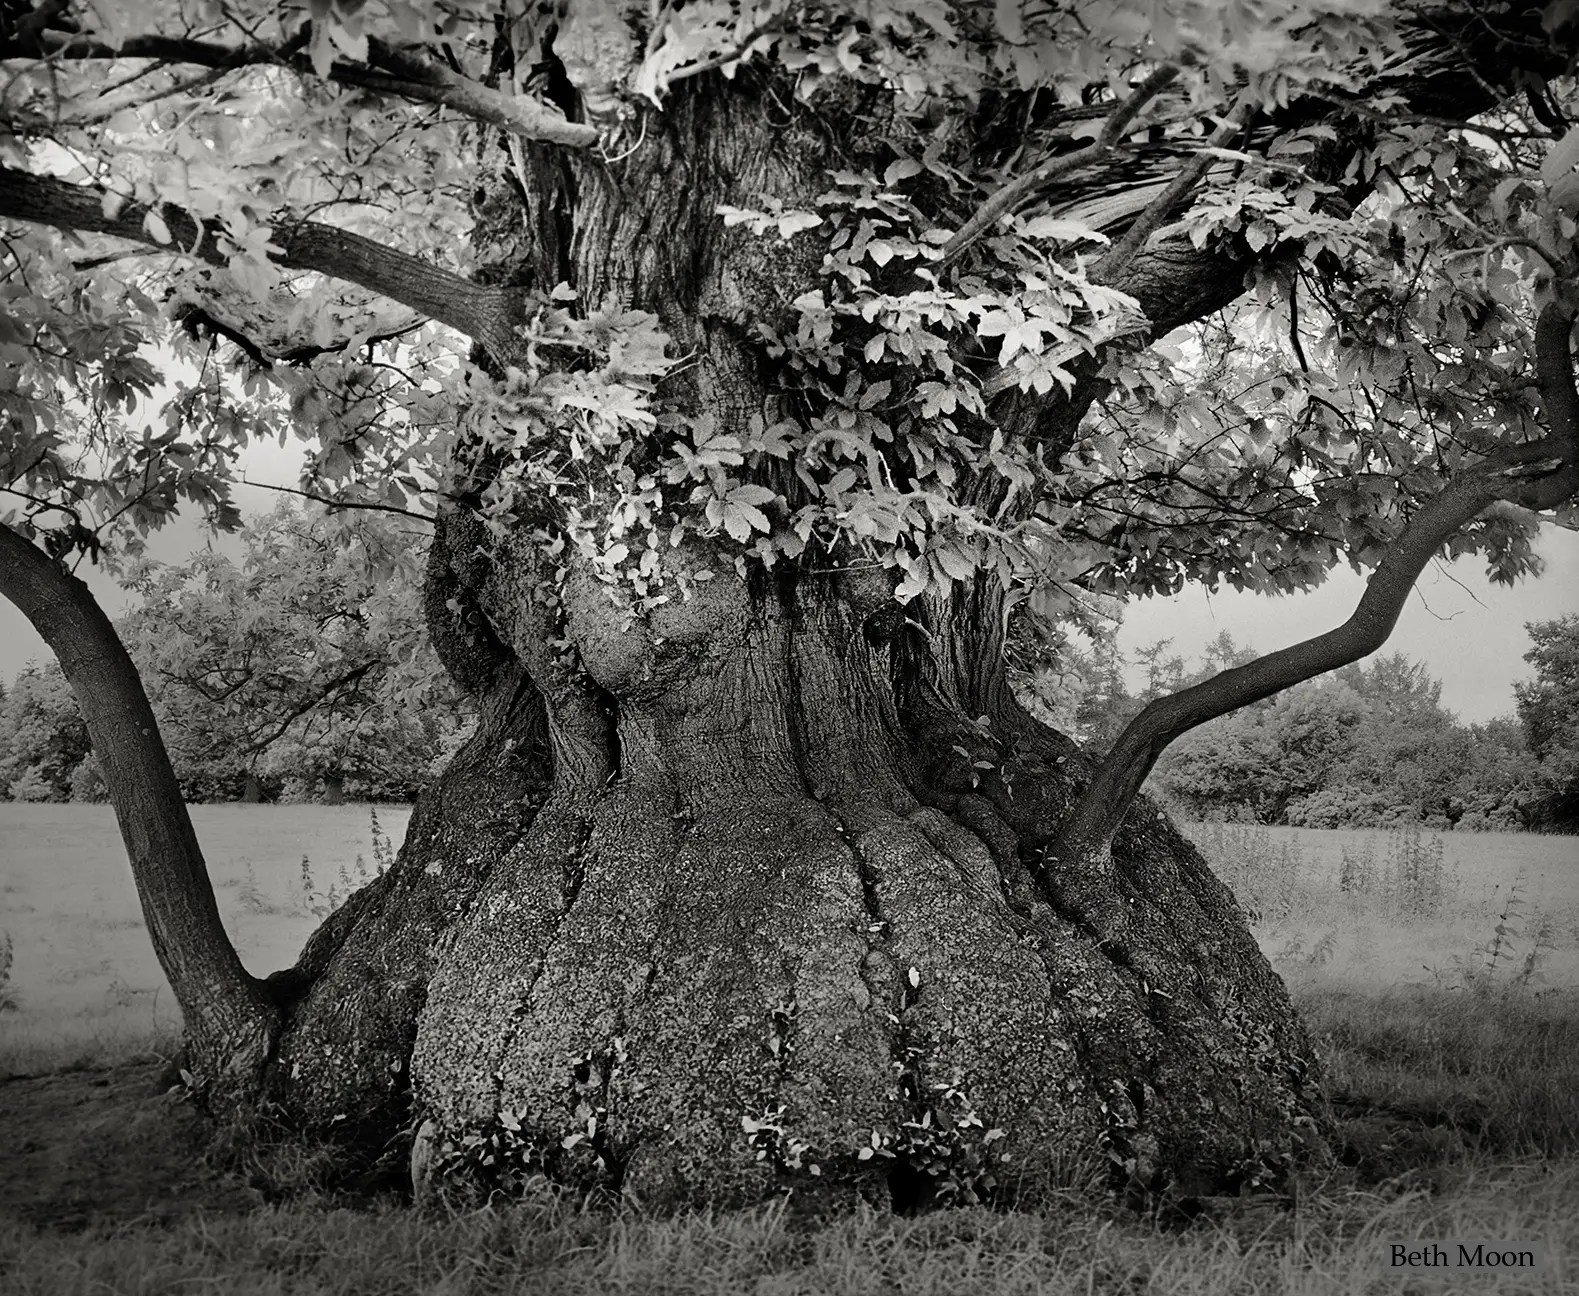 This massive Chestnut tree is on the grounds of the Croft Castle in Herefordshire, England. Rumor has it that the tree was planted using nuts that had been salvaged from a Spanish Armada that famously shipwrecked in 1592, which would make the tree over 420 years old.